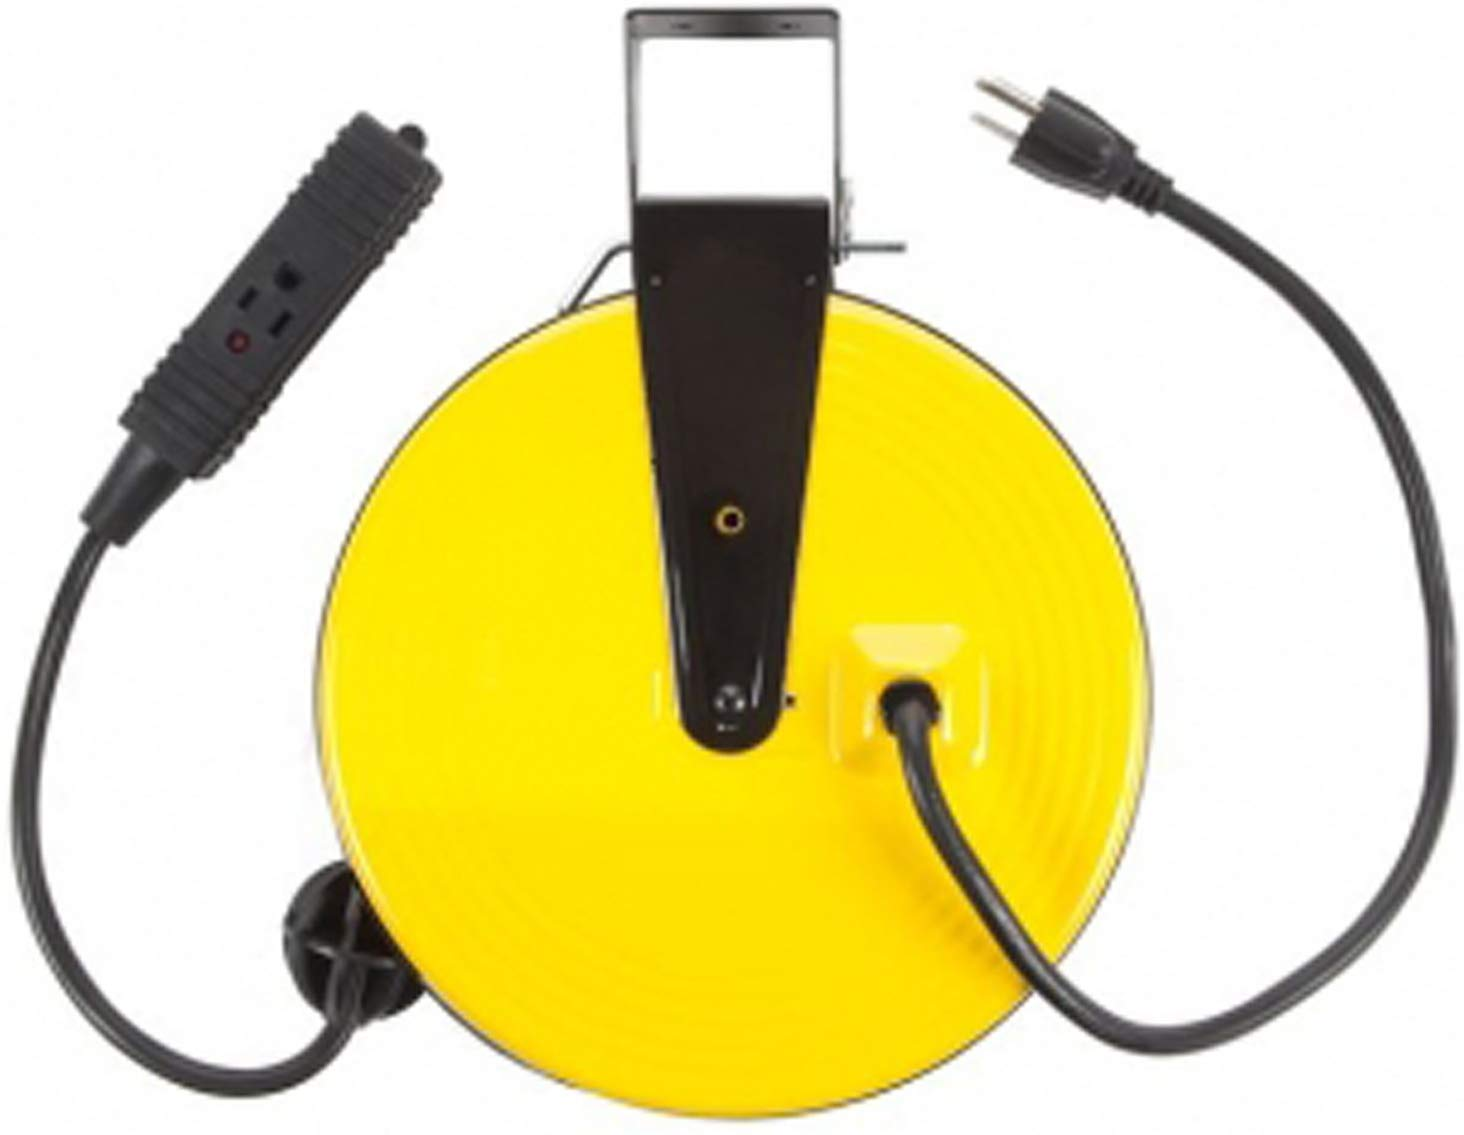 Bayco SL-800 Retractable Cord Reel with 3 Outlets